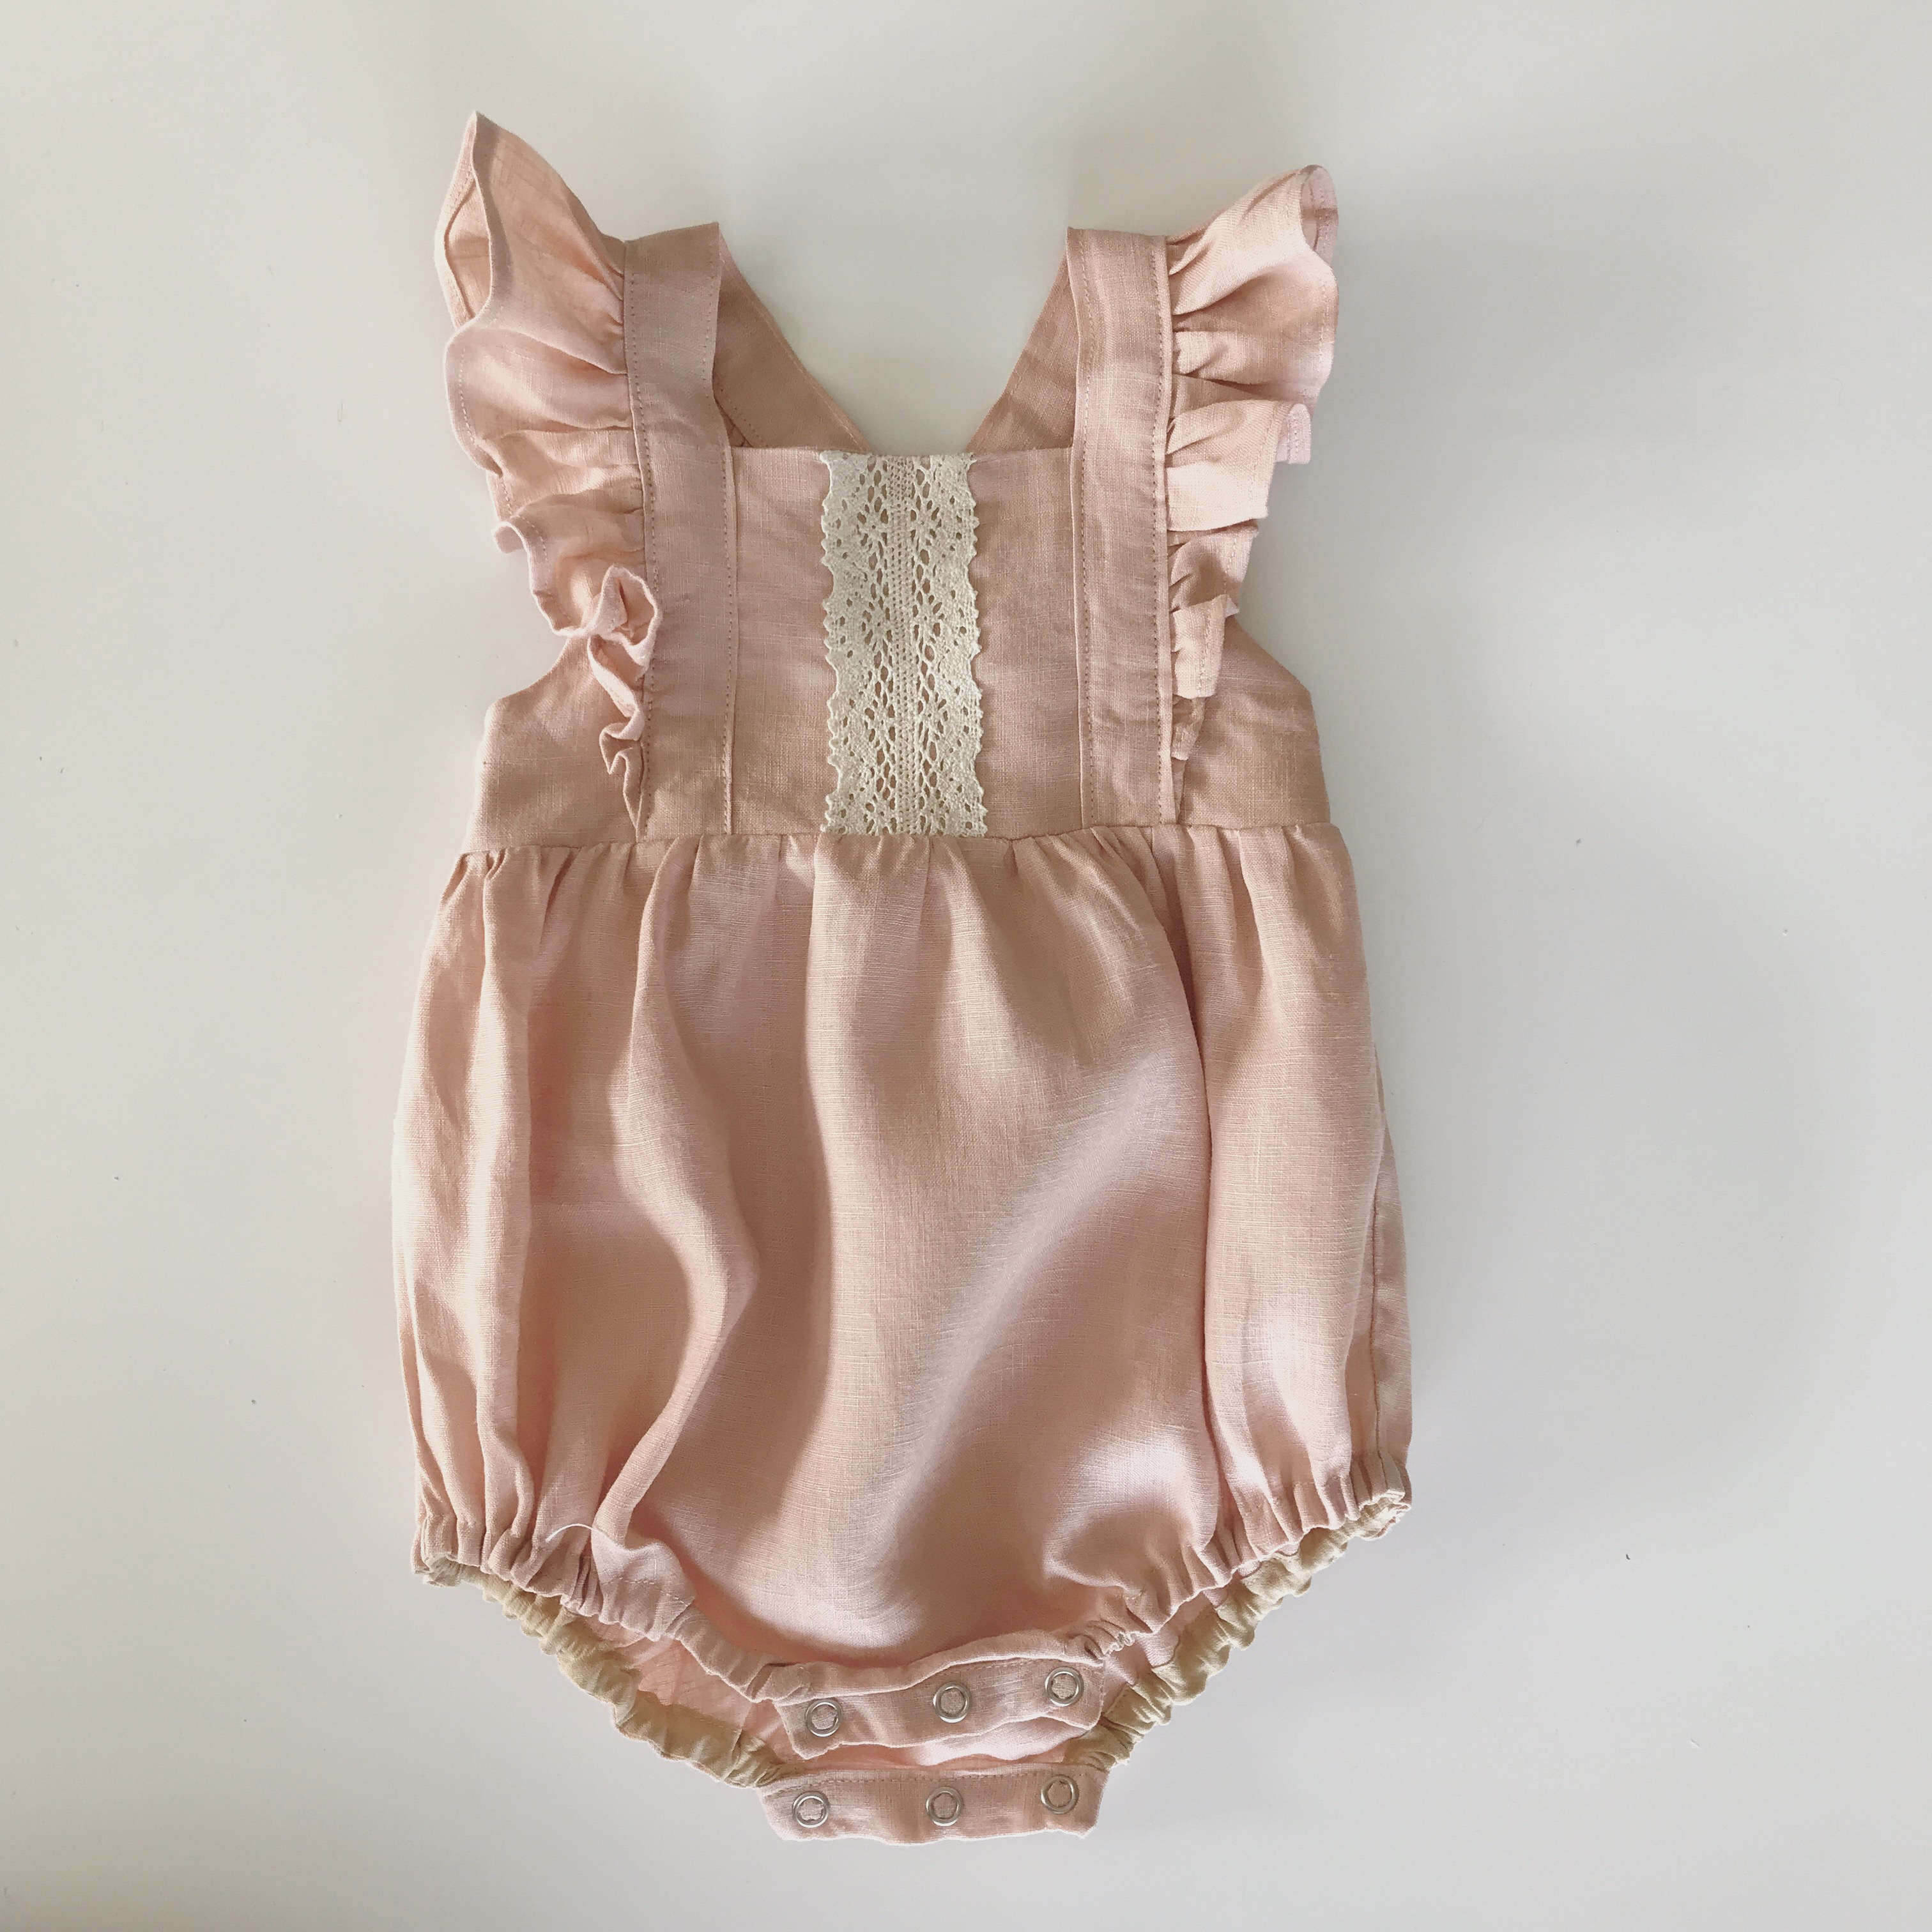 A beautiful vintage inspired romper, you will simply adore. Frill accented shoulder straps with button closure on back side of bodice. 2 height adjustments on straps.